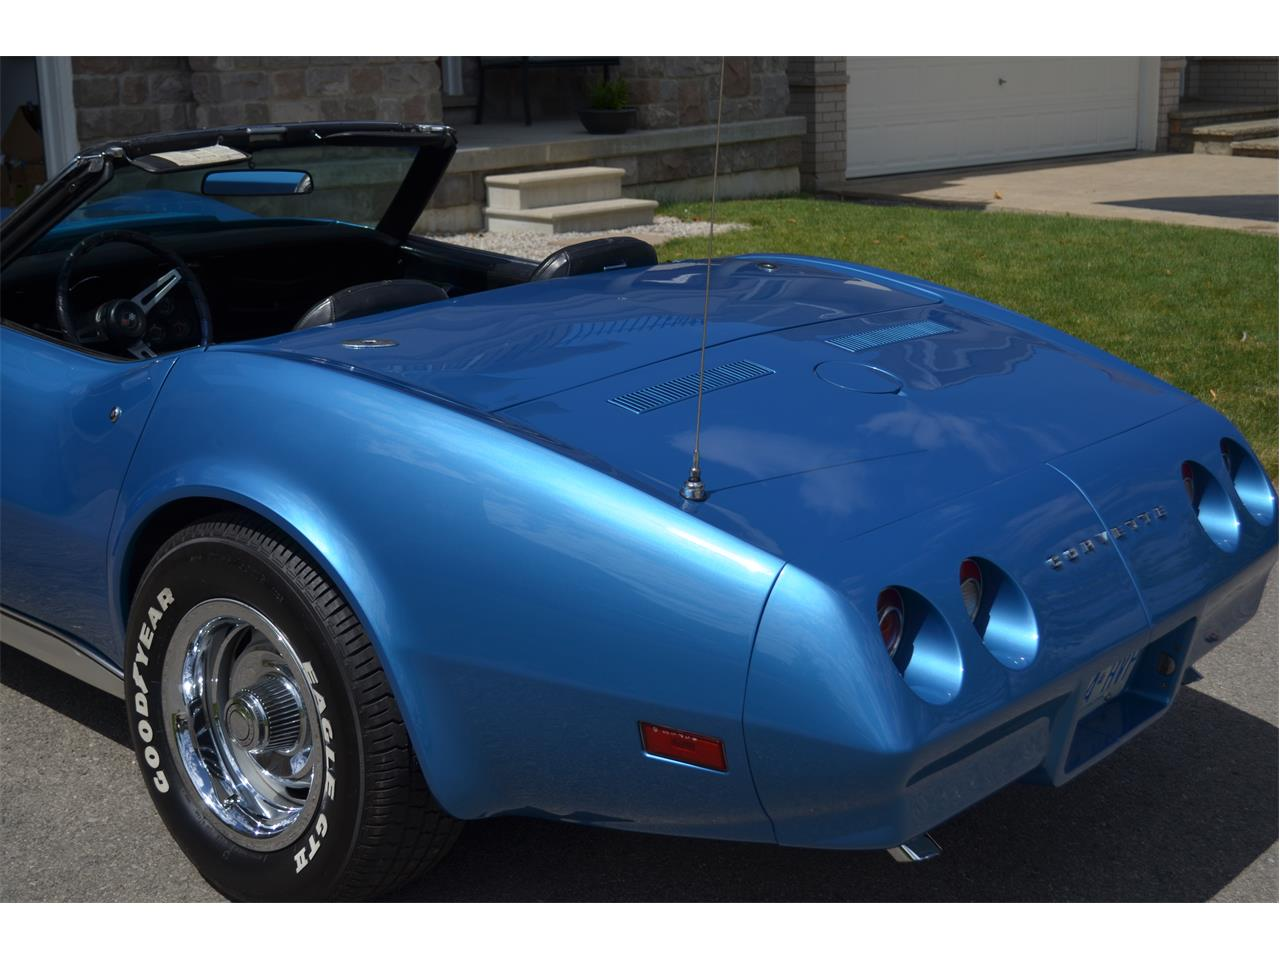 Large Picture of 1974 Chevrolet Corvette located in Ontario - $21,500.00 - F75E